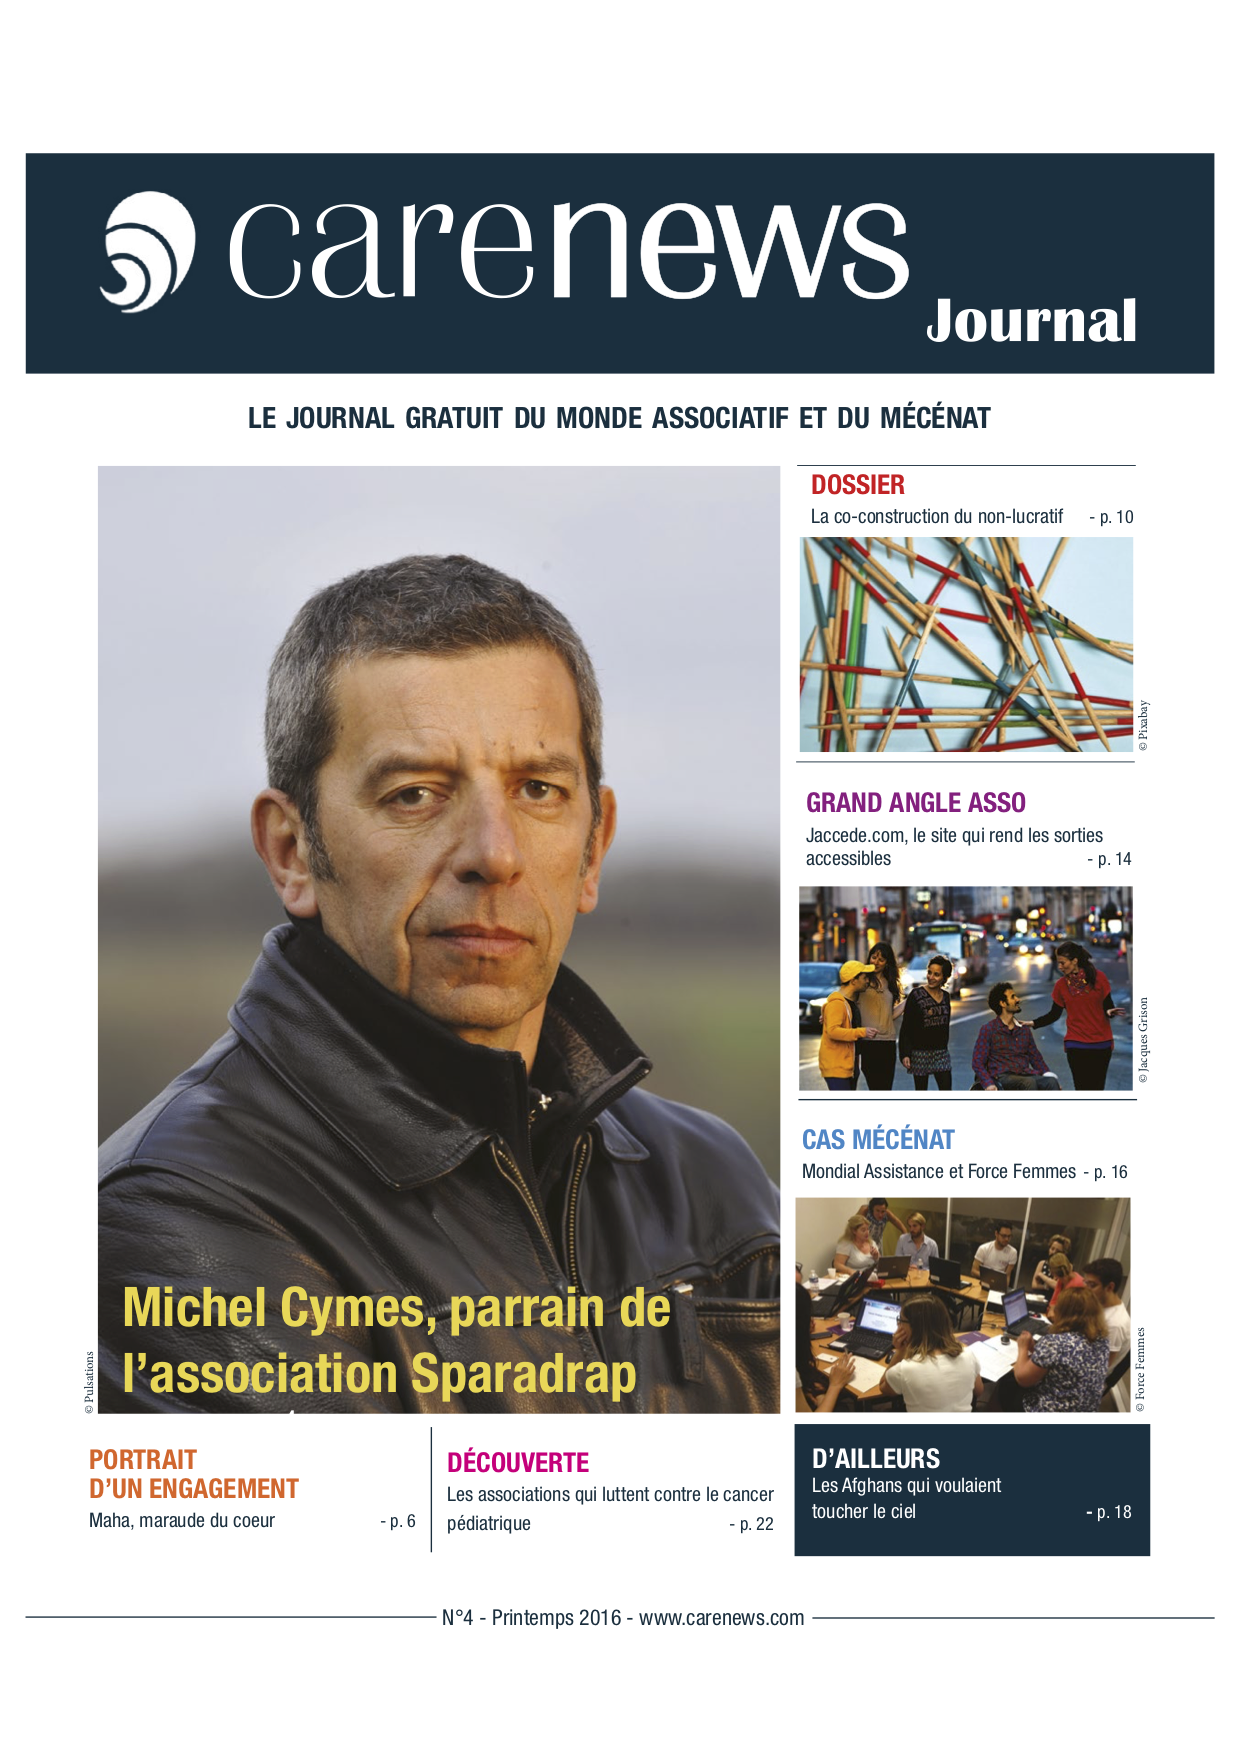 Carenews Journal n°4